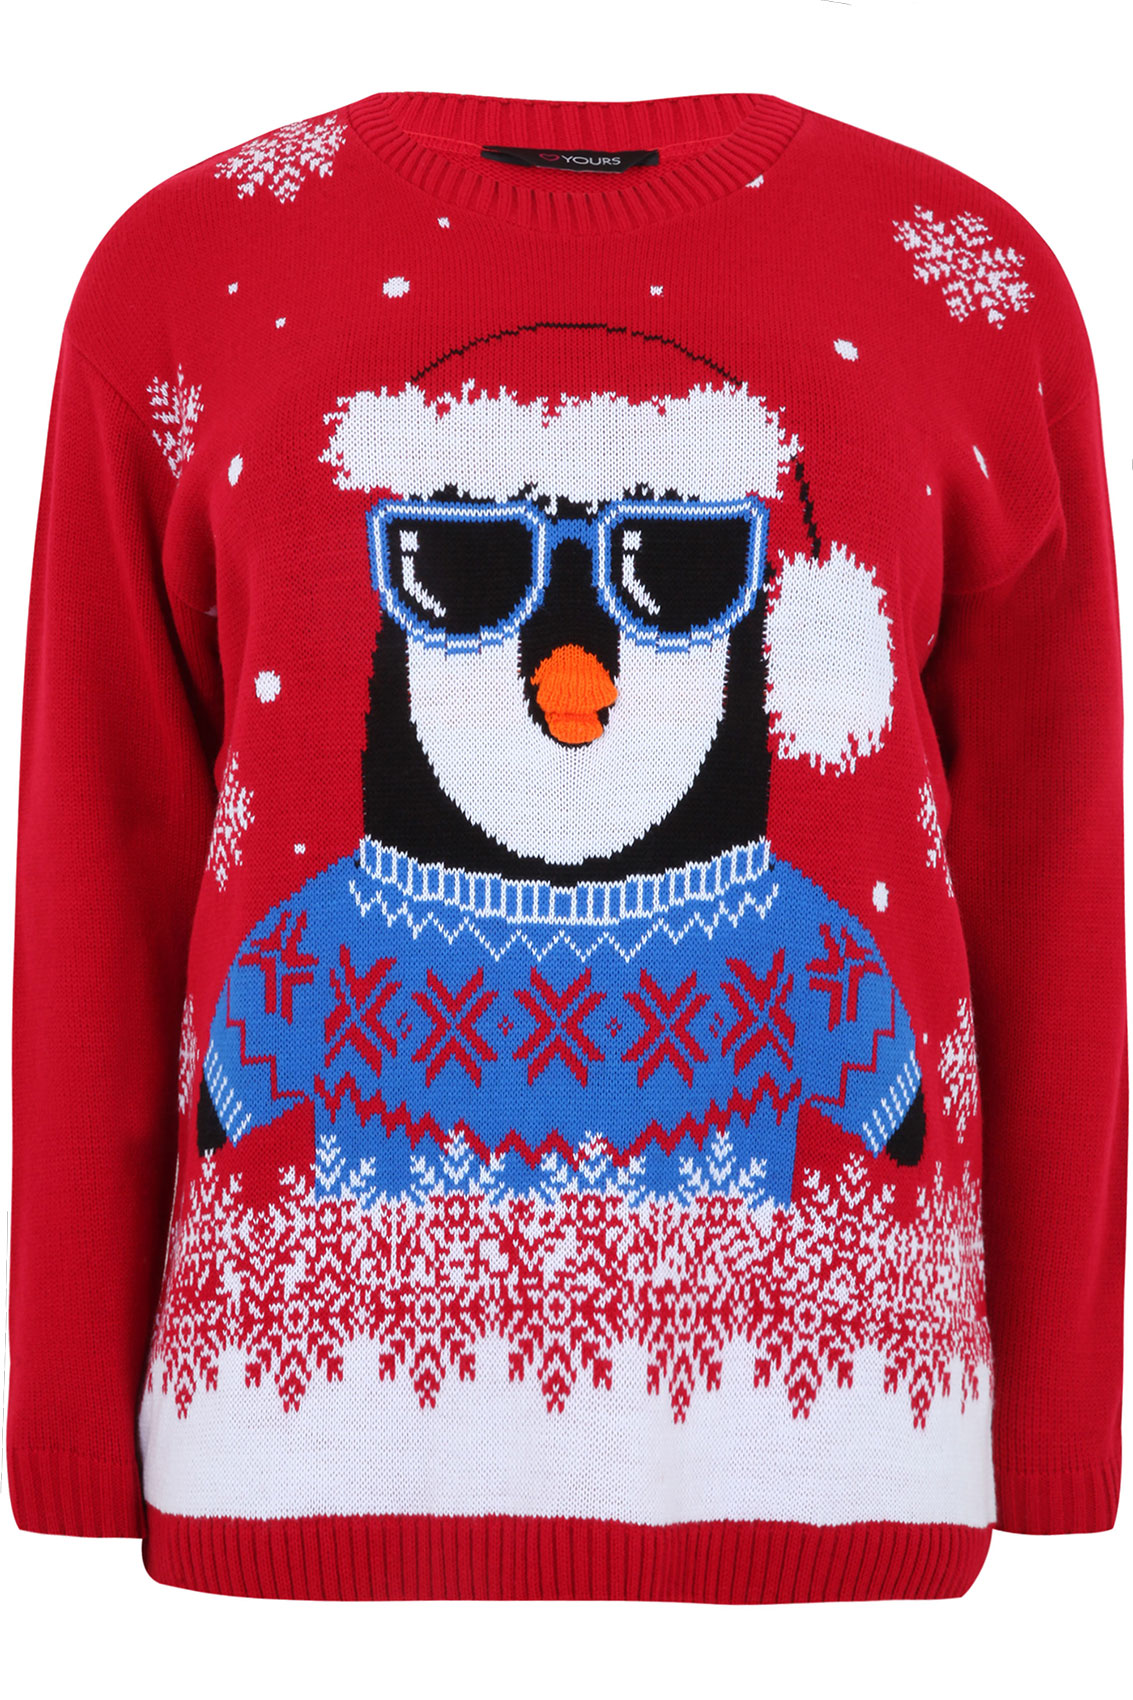 Christmas Penguin Jumper Knitting Pattern : Red Knitted Penguin Novelty Christmas Jumper Plus size 16,18,20,22,24,26,28,3...